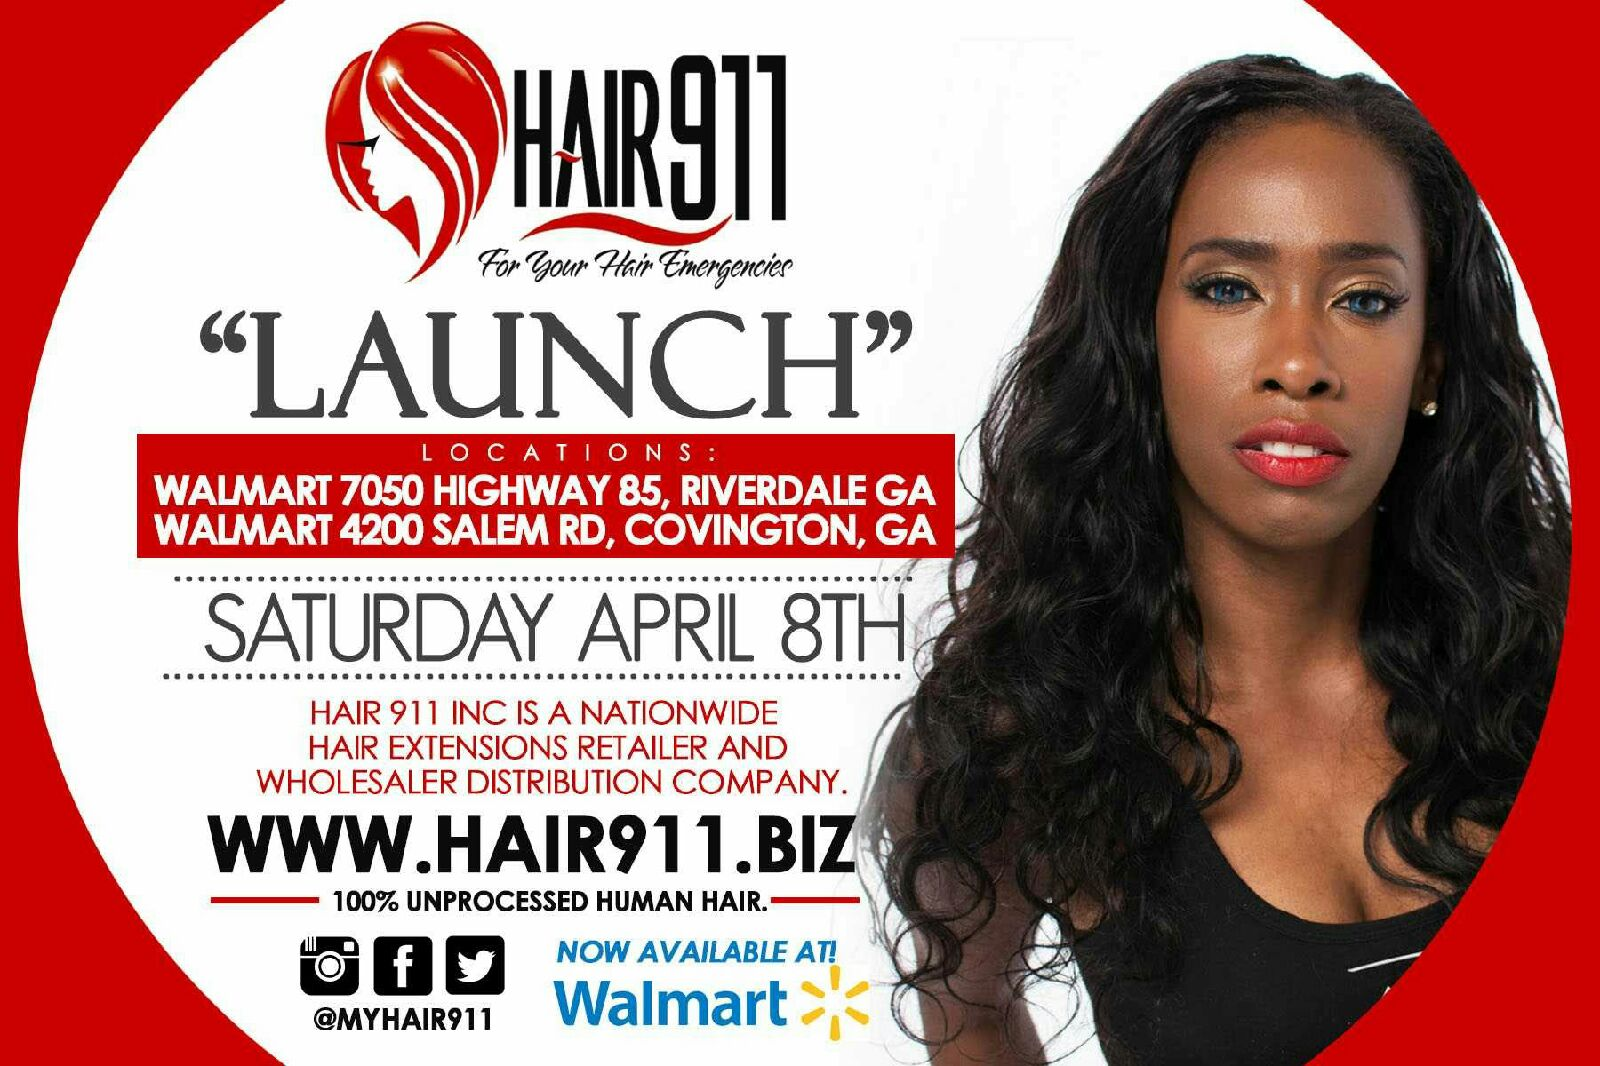 Hair 911 Inc Announces Official Hair 911 Product Launch With